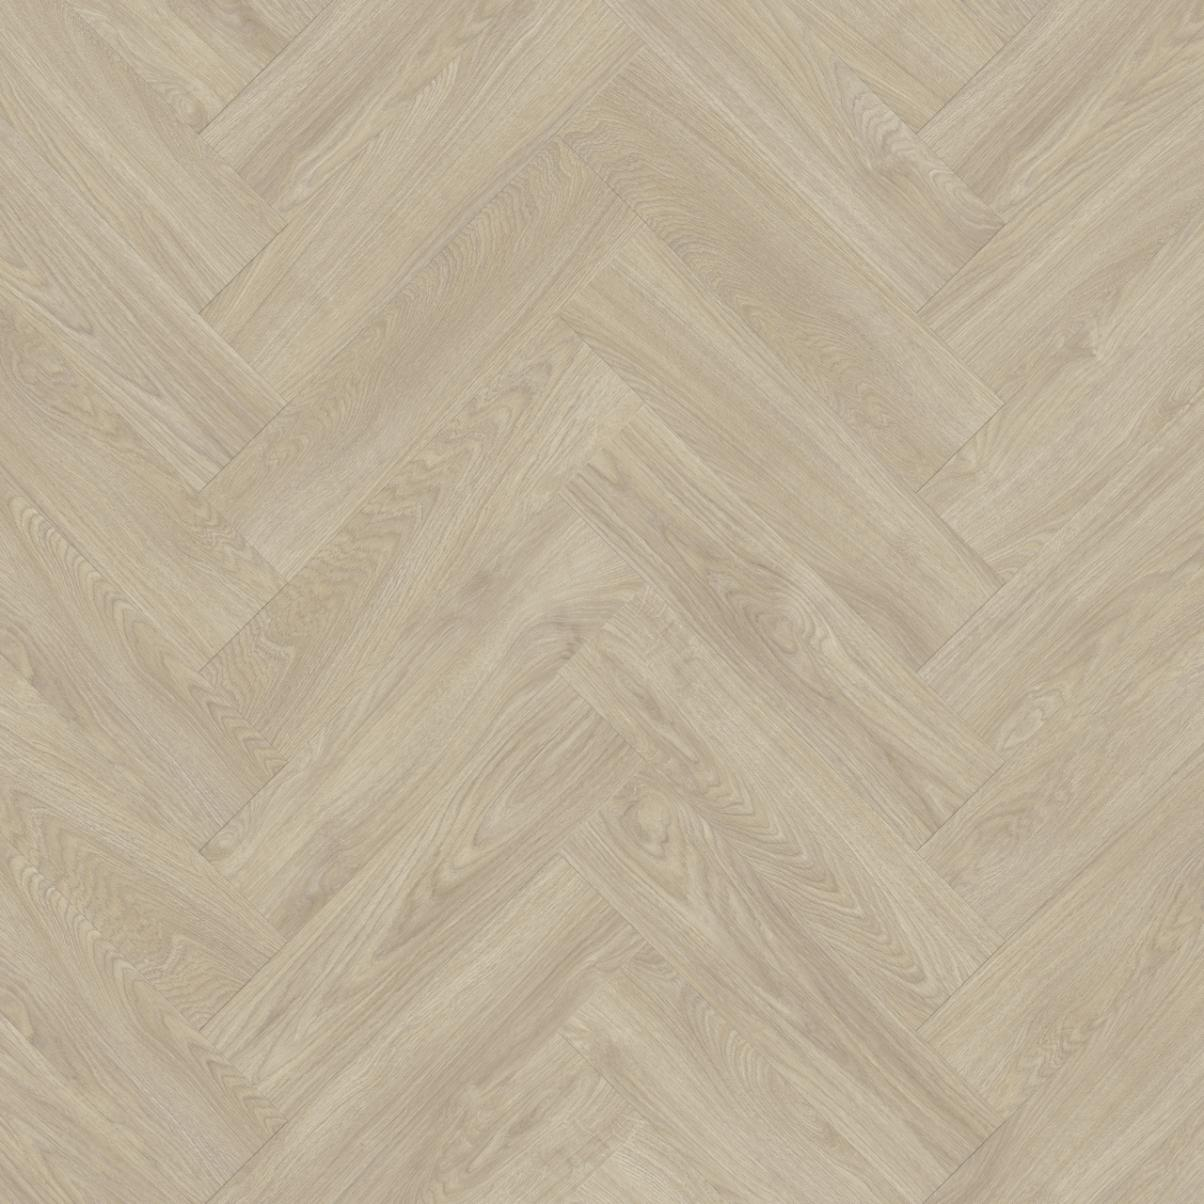 ПВХ  Модулео PARQUETRY SHORT Impress  51229 Laurel Oak (2,5мм-0,55мм)